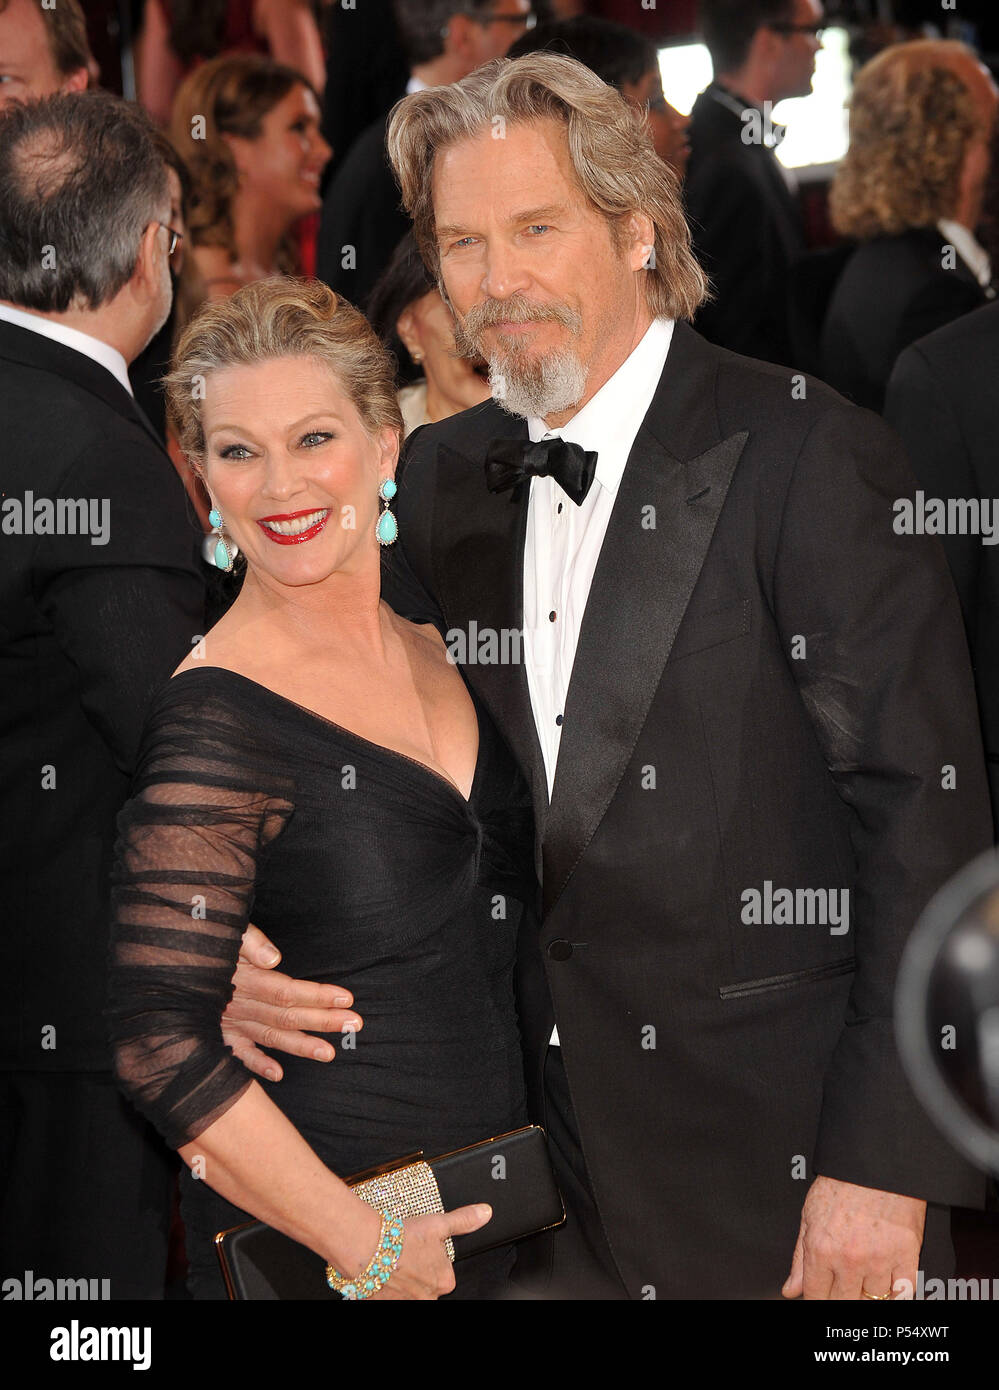 Jeff Bridges and wife 411 - 82nd Academy Awards arrival at ...